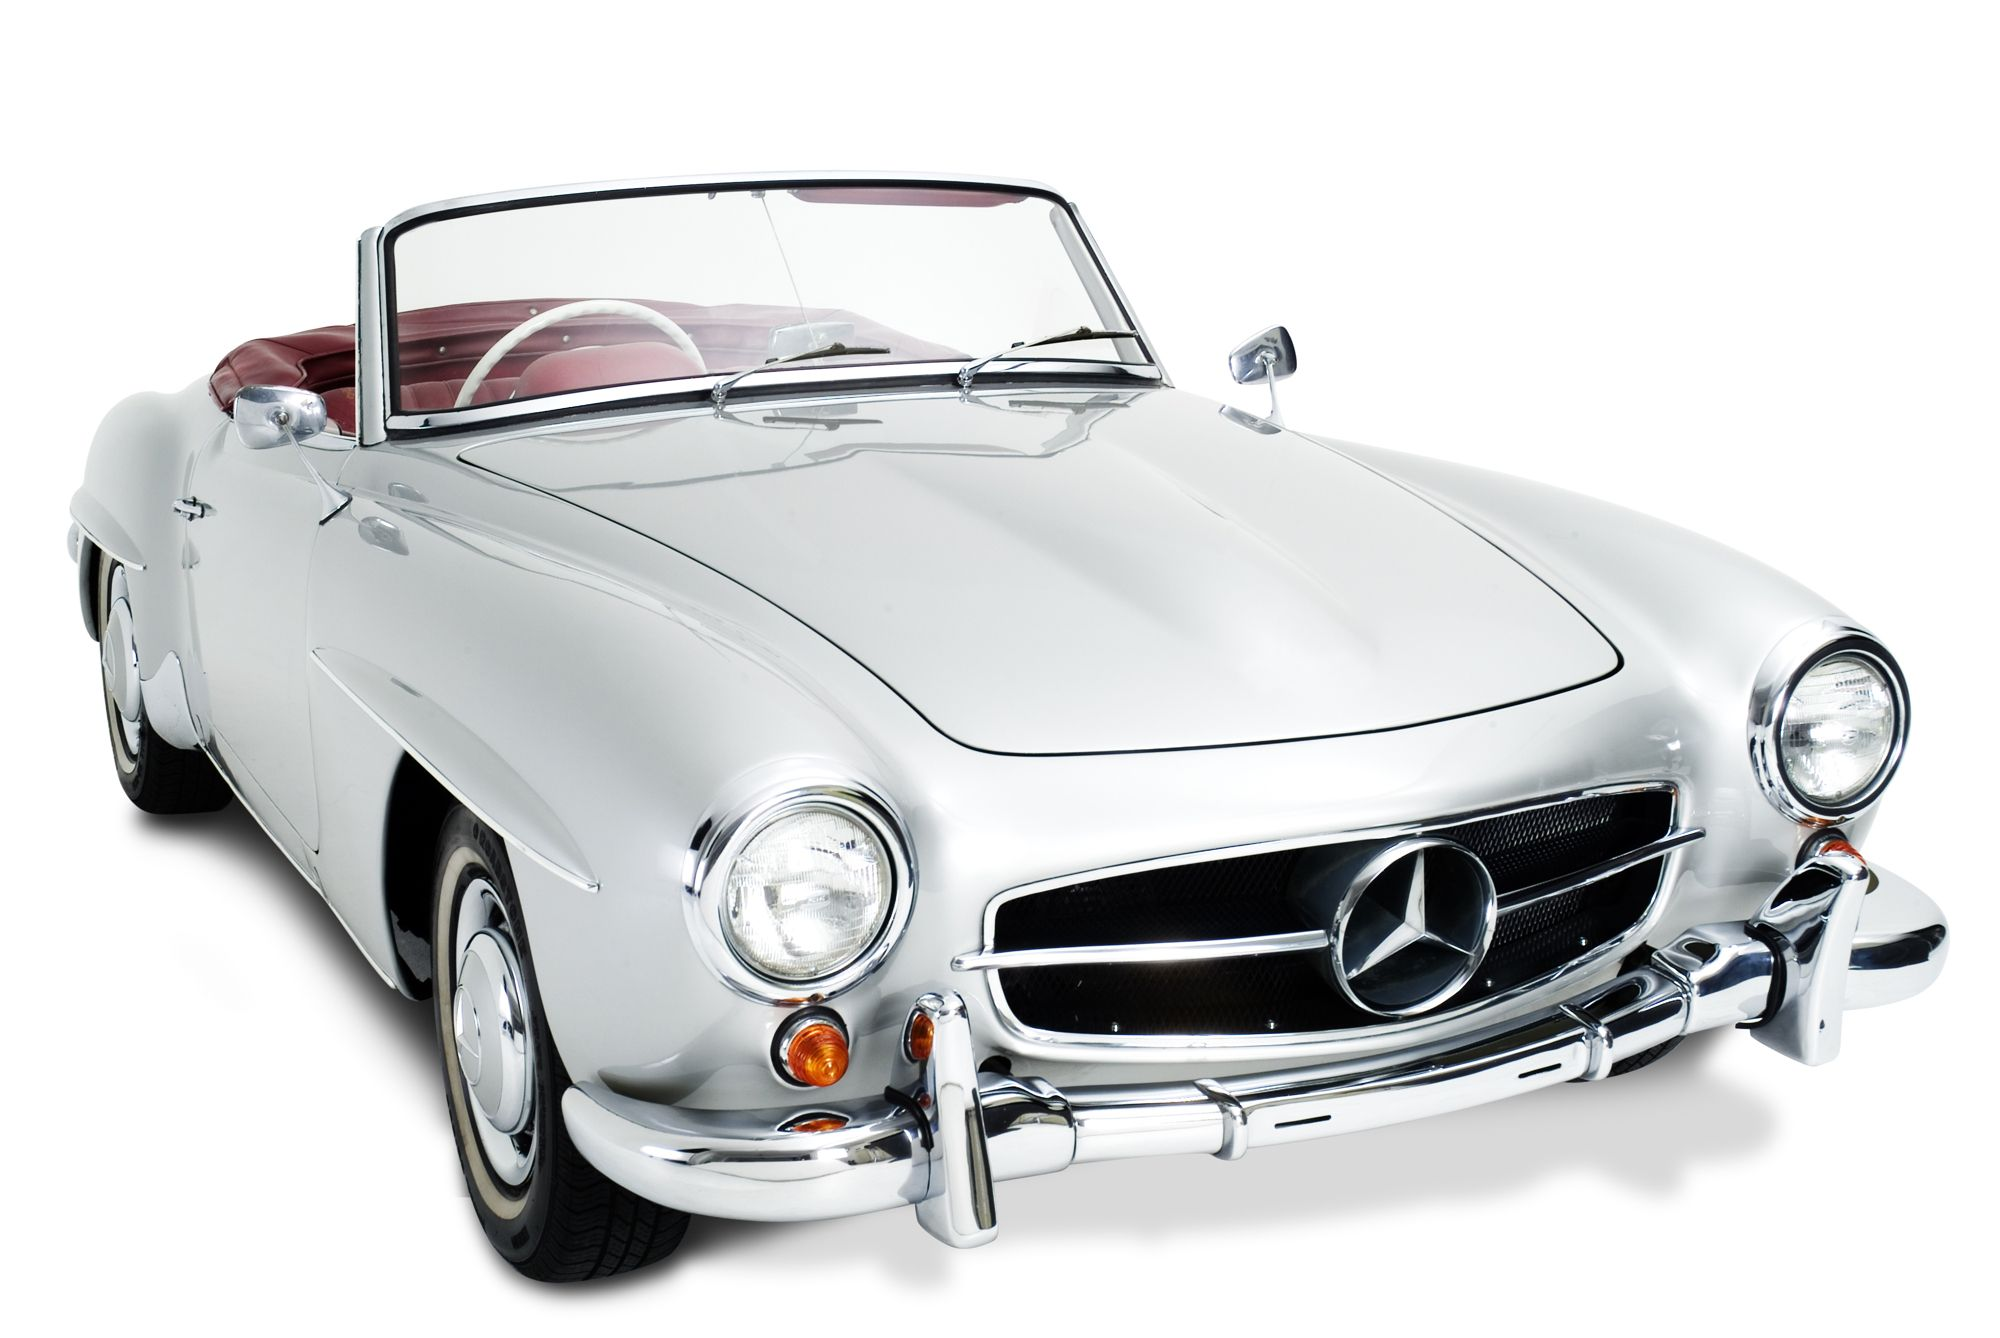 Classic Silver Mercedes Benz Convertible Can Someone Please Gift